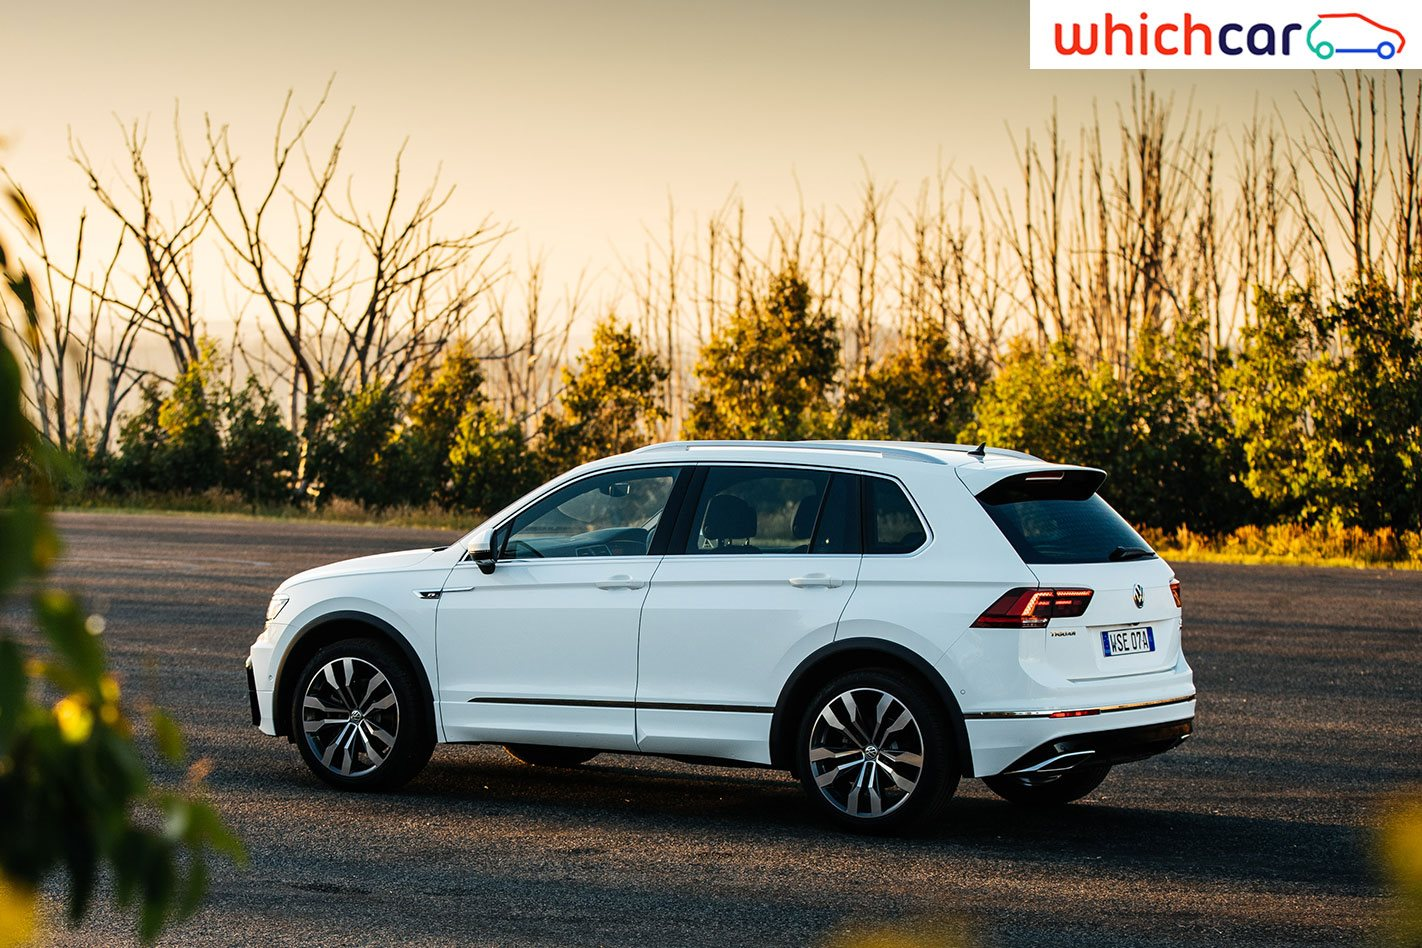 Volkswagen Tiguan 2019 Review, Price and Features